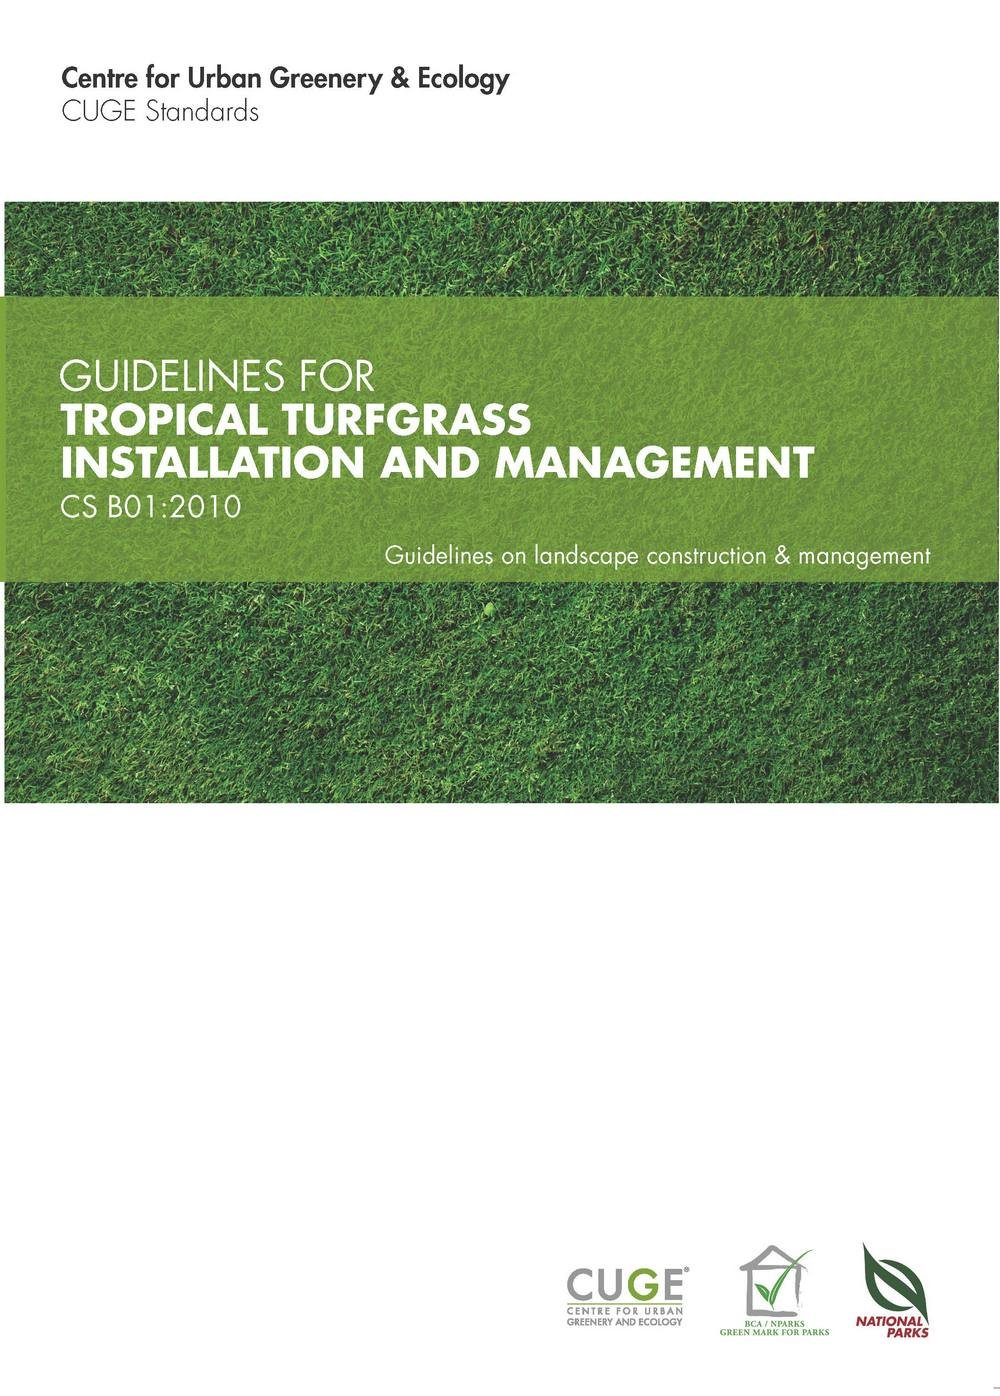 CSB01:2010 Guidelines for Tropical Turfgrass Installation ...